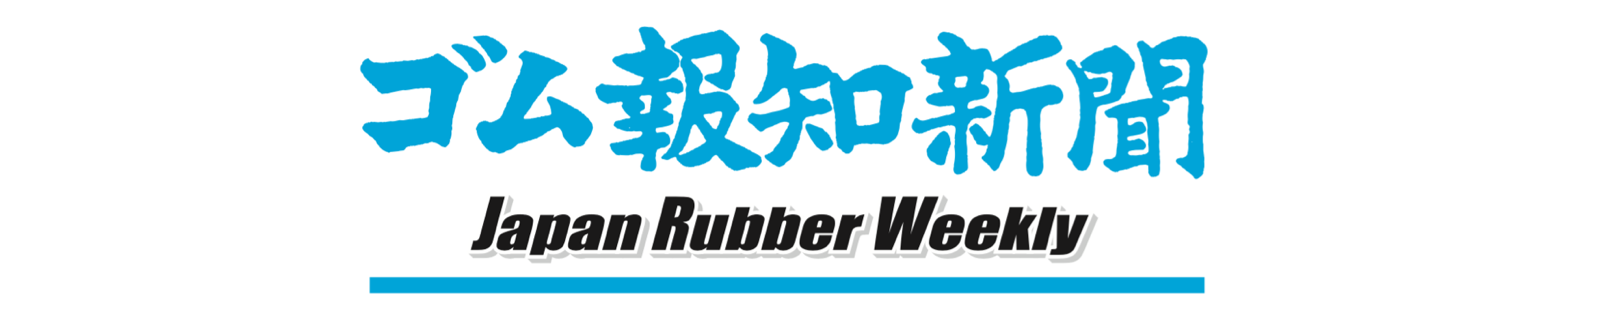 Japan Rubber Weekly logo